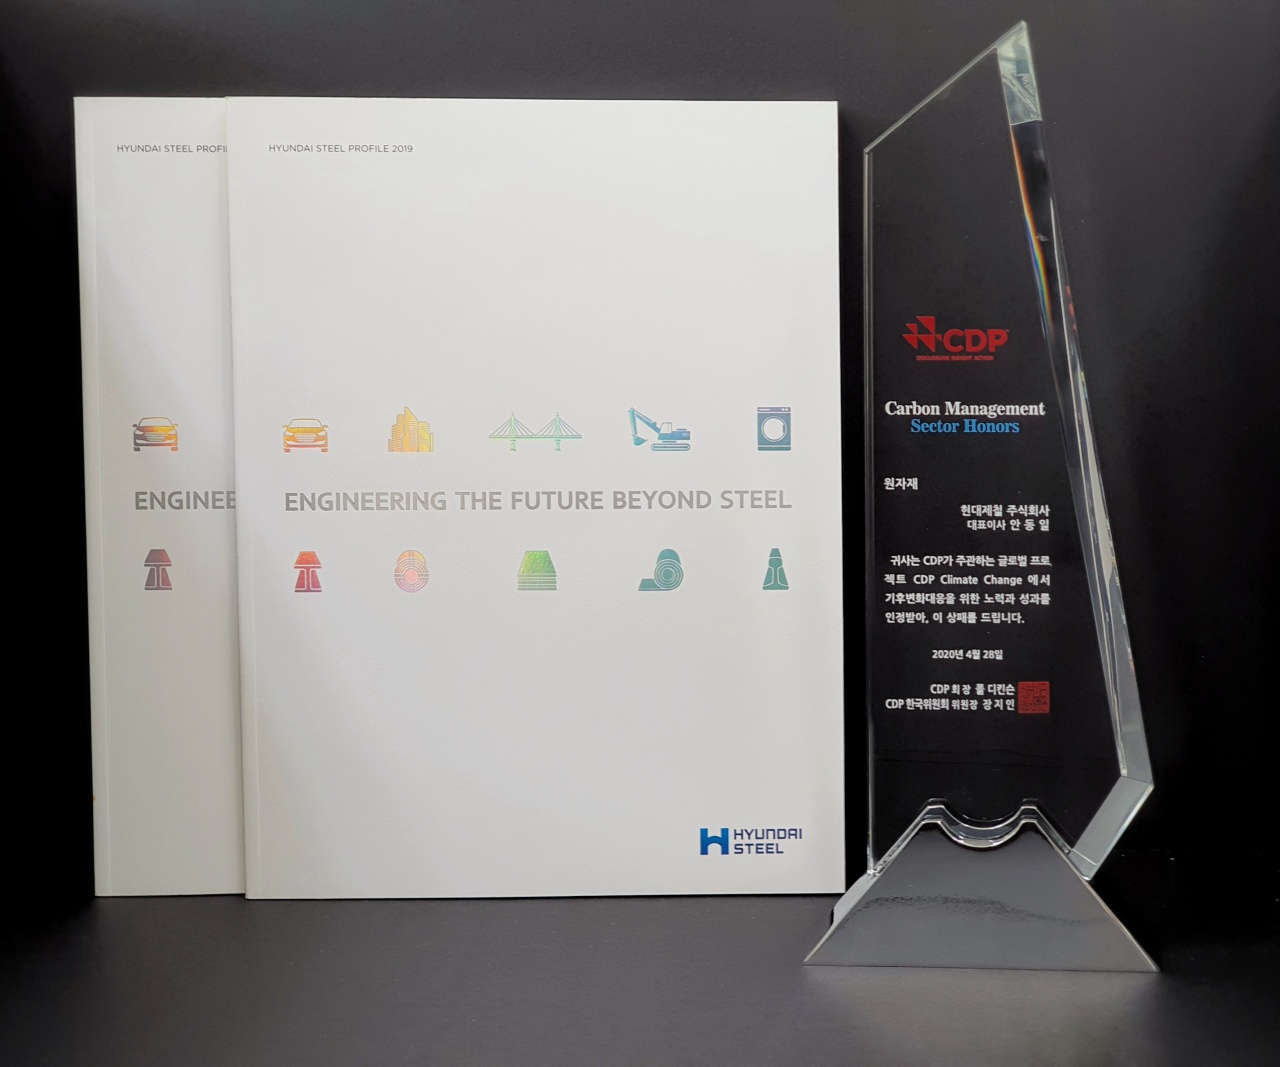 A trophy awarded to Hyundai Steel for winning Carbon Management Sector Honors Award in raw material (Hyundai Steel)